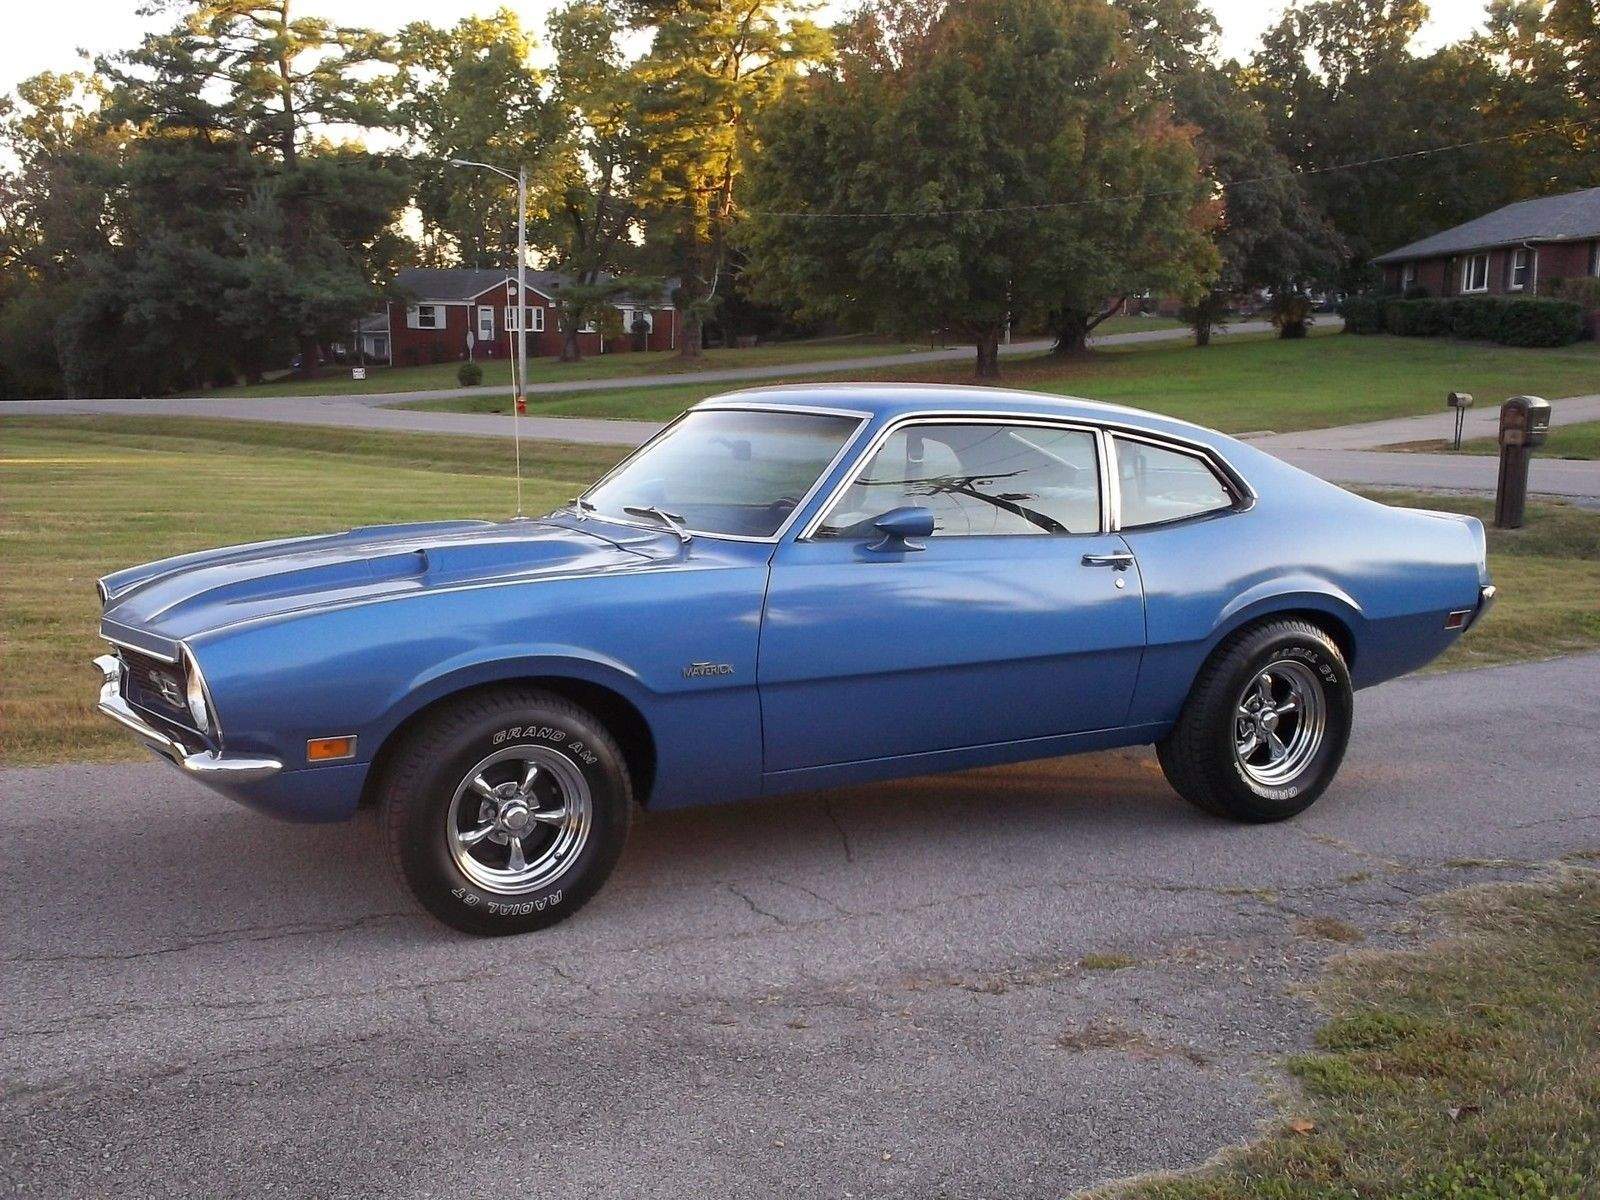 Cars Of The S Pics Help With S Comet Please Ford Muscle